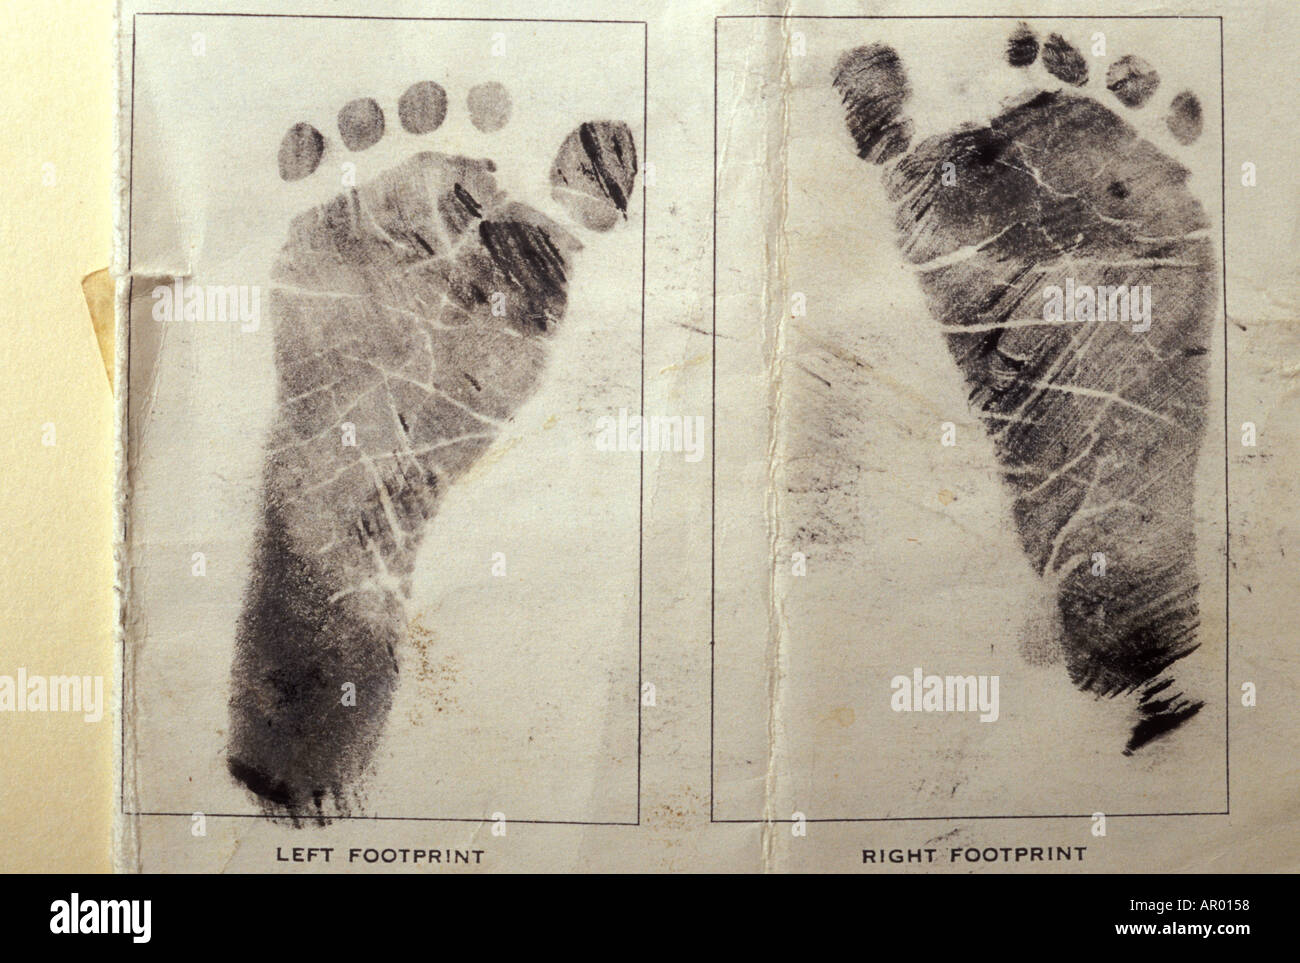 Baby s footprints from ink on birth certificate - Stock Image